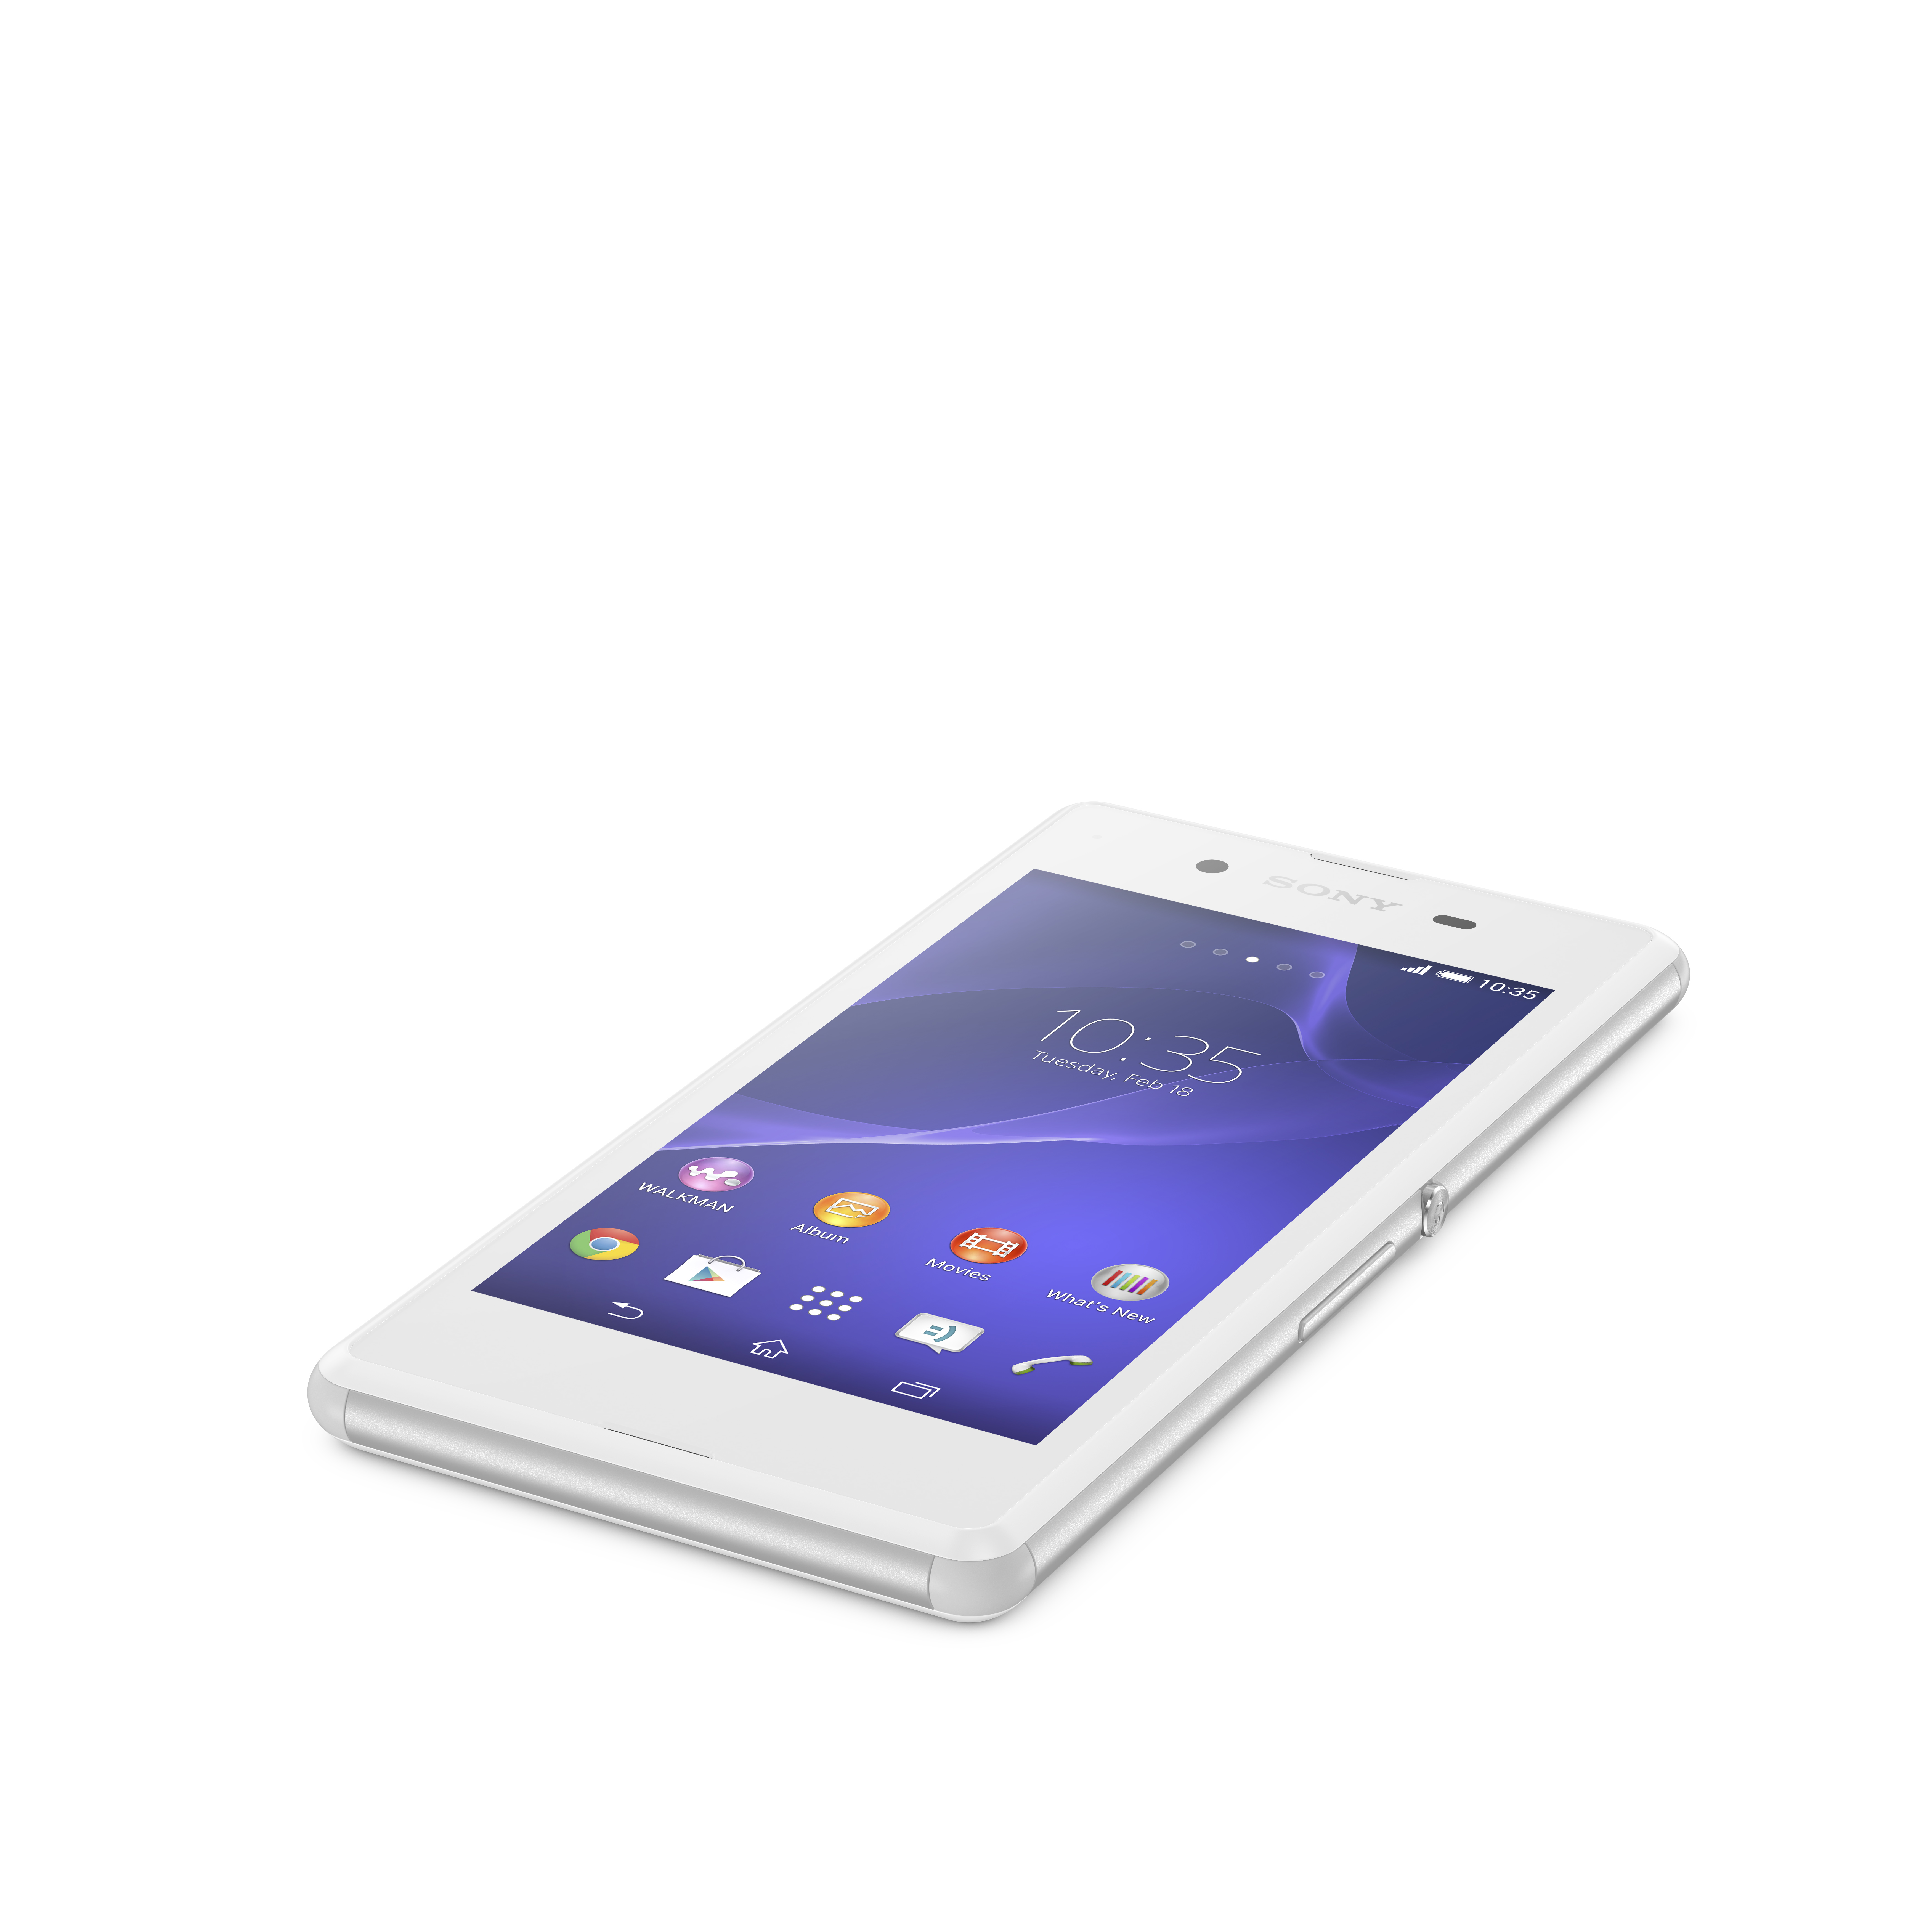 03_Xperia_E3_White_Tabletop